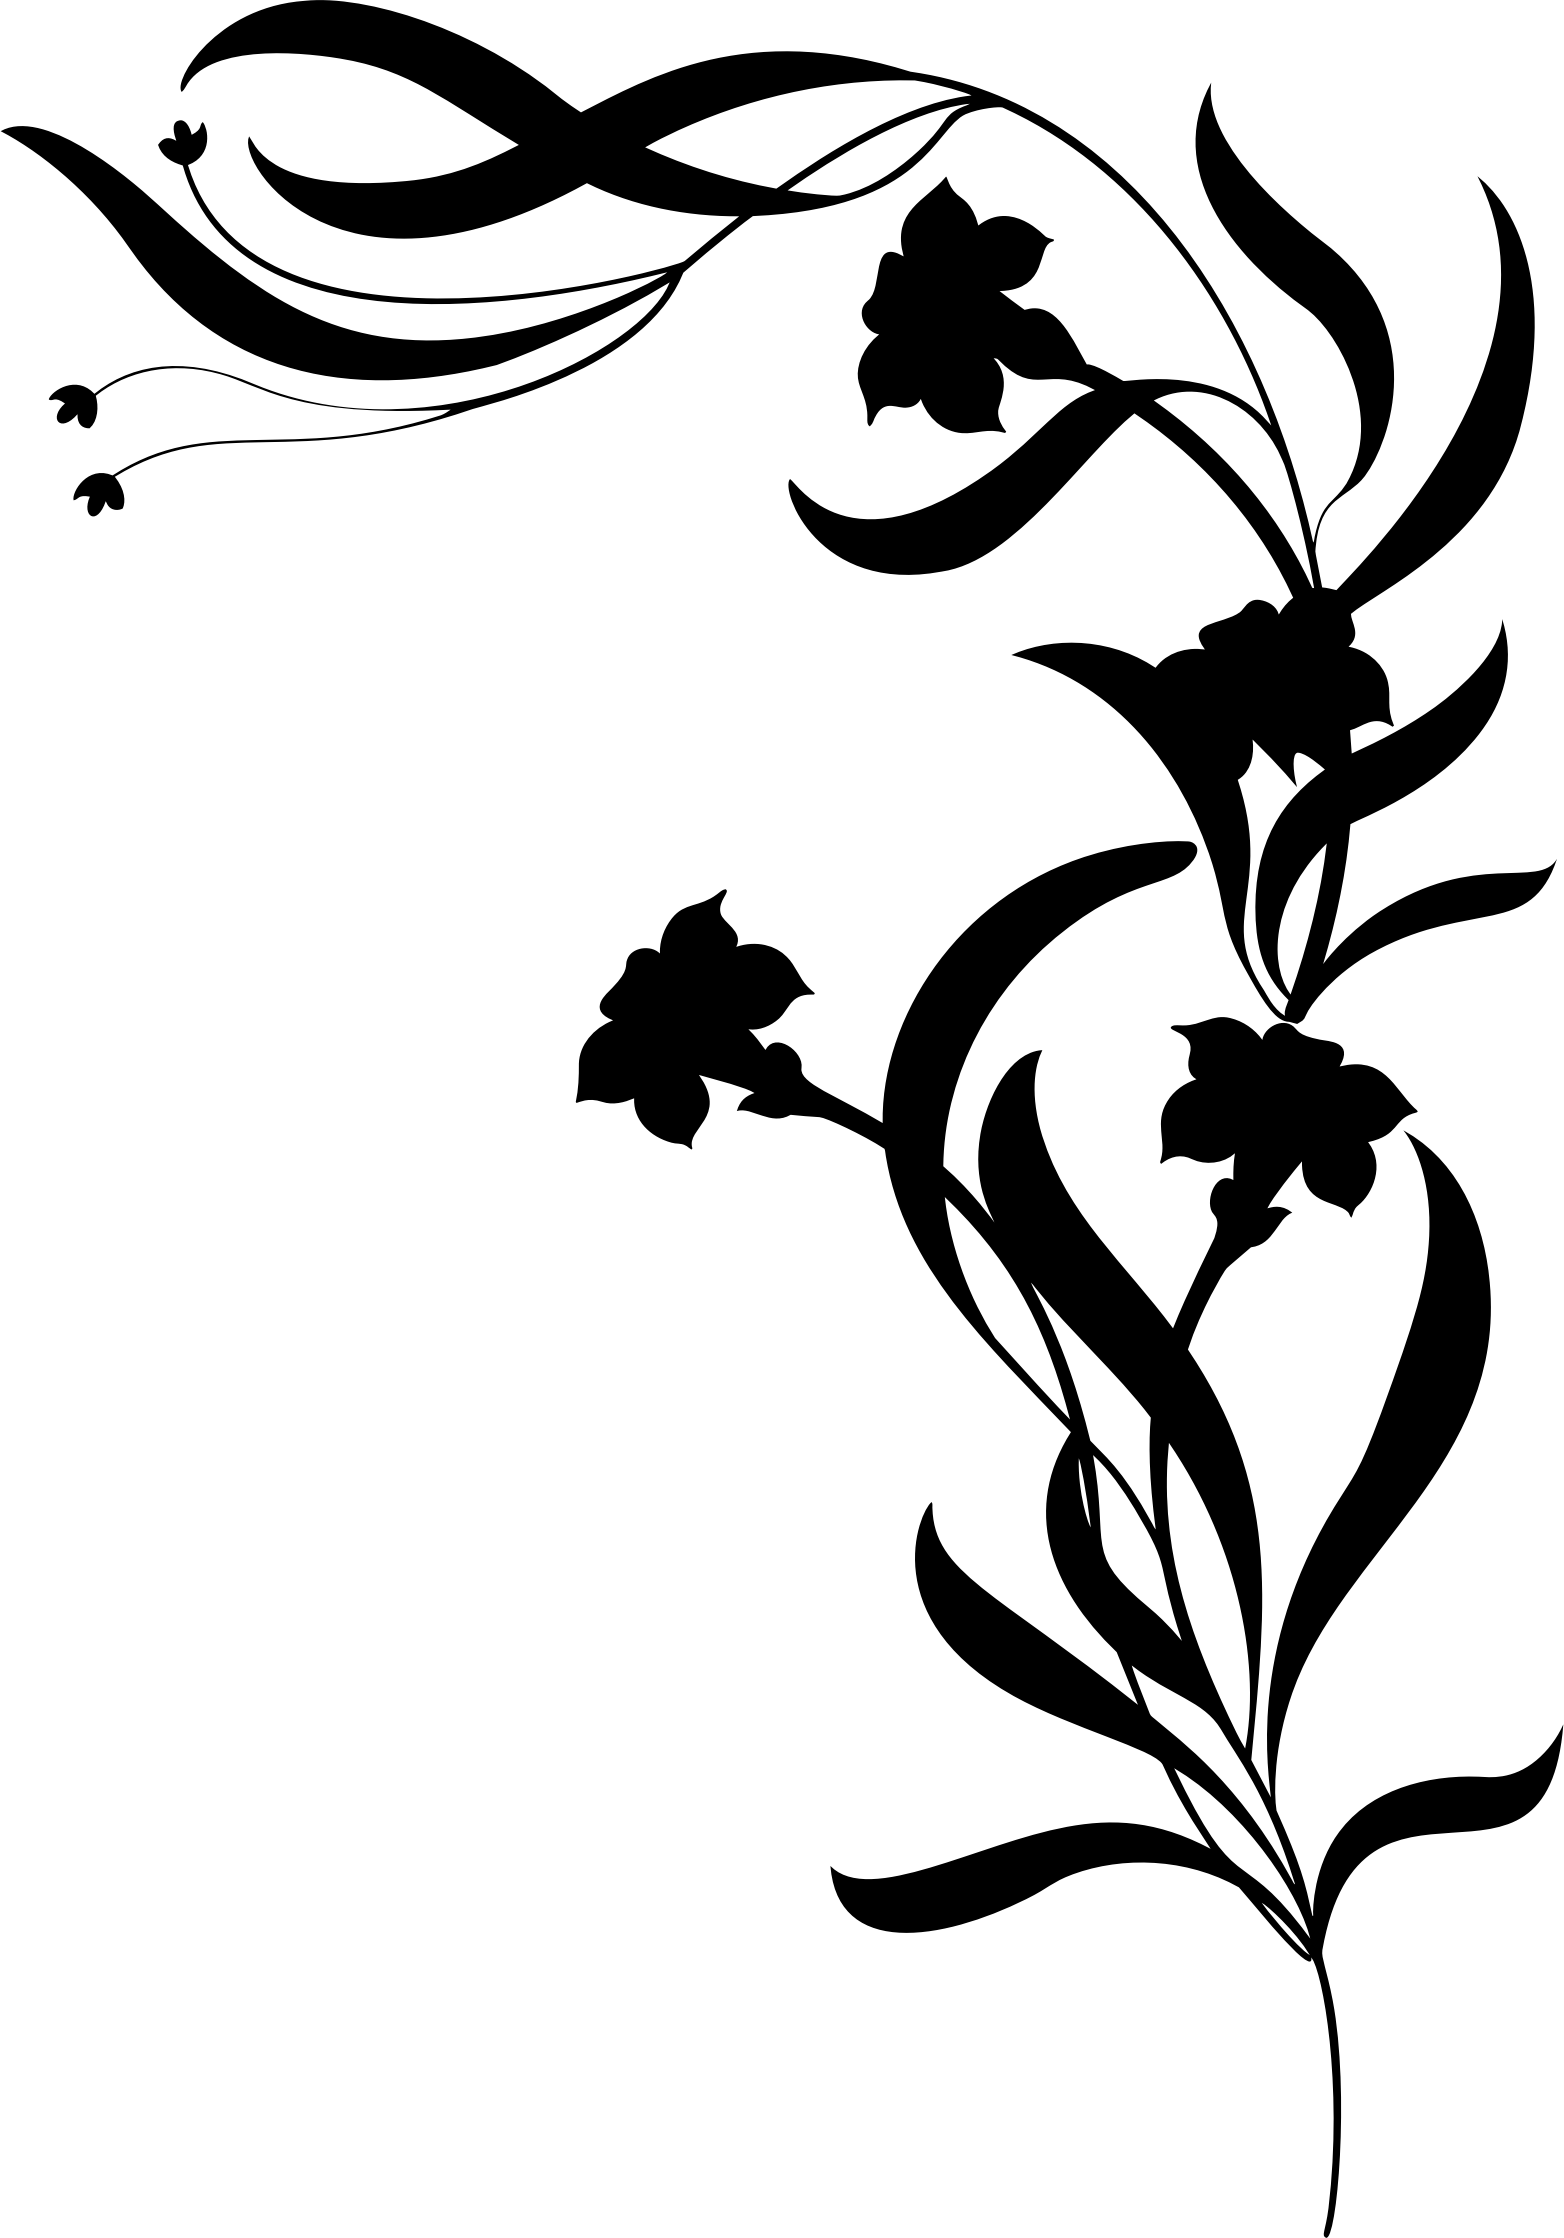 Flower Silhouette Border At Getdrawings